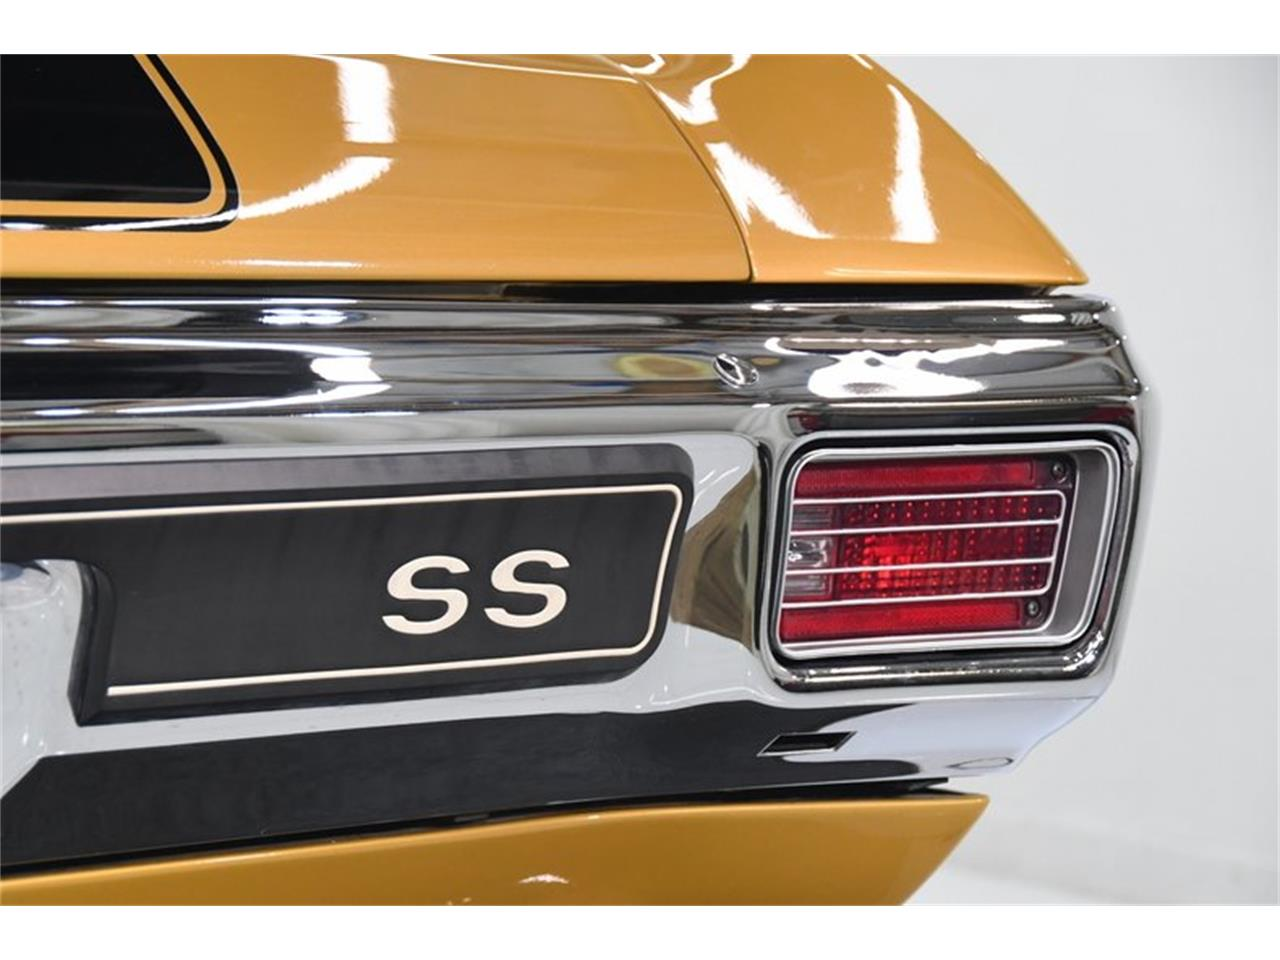 Large Picture of '70 Chevrolet Chevelle - $49,998.00 - QKLO